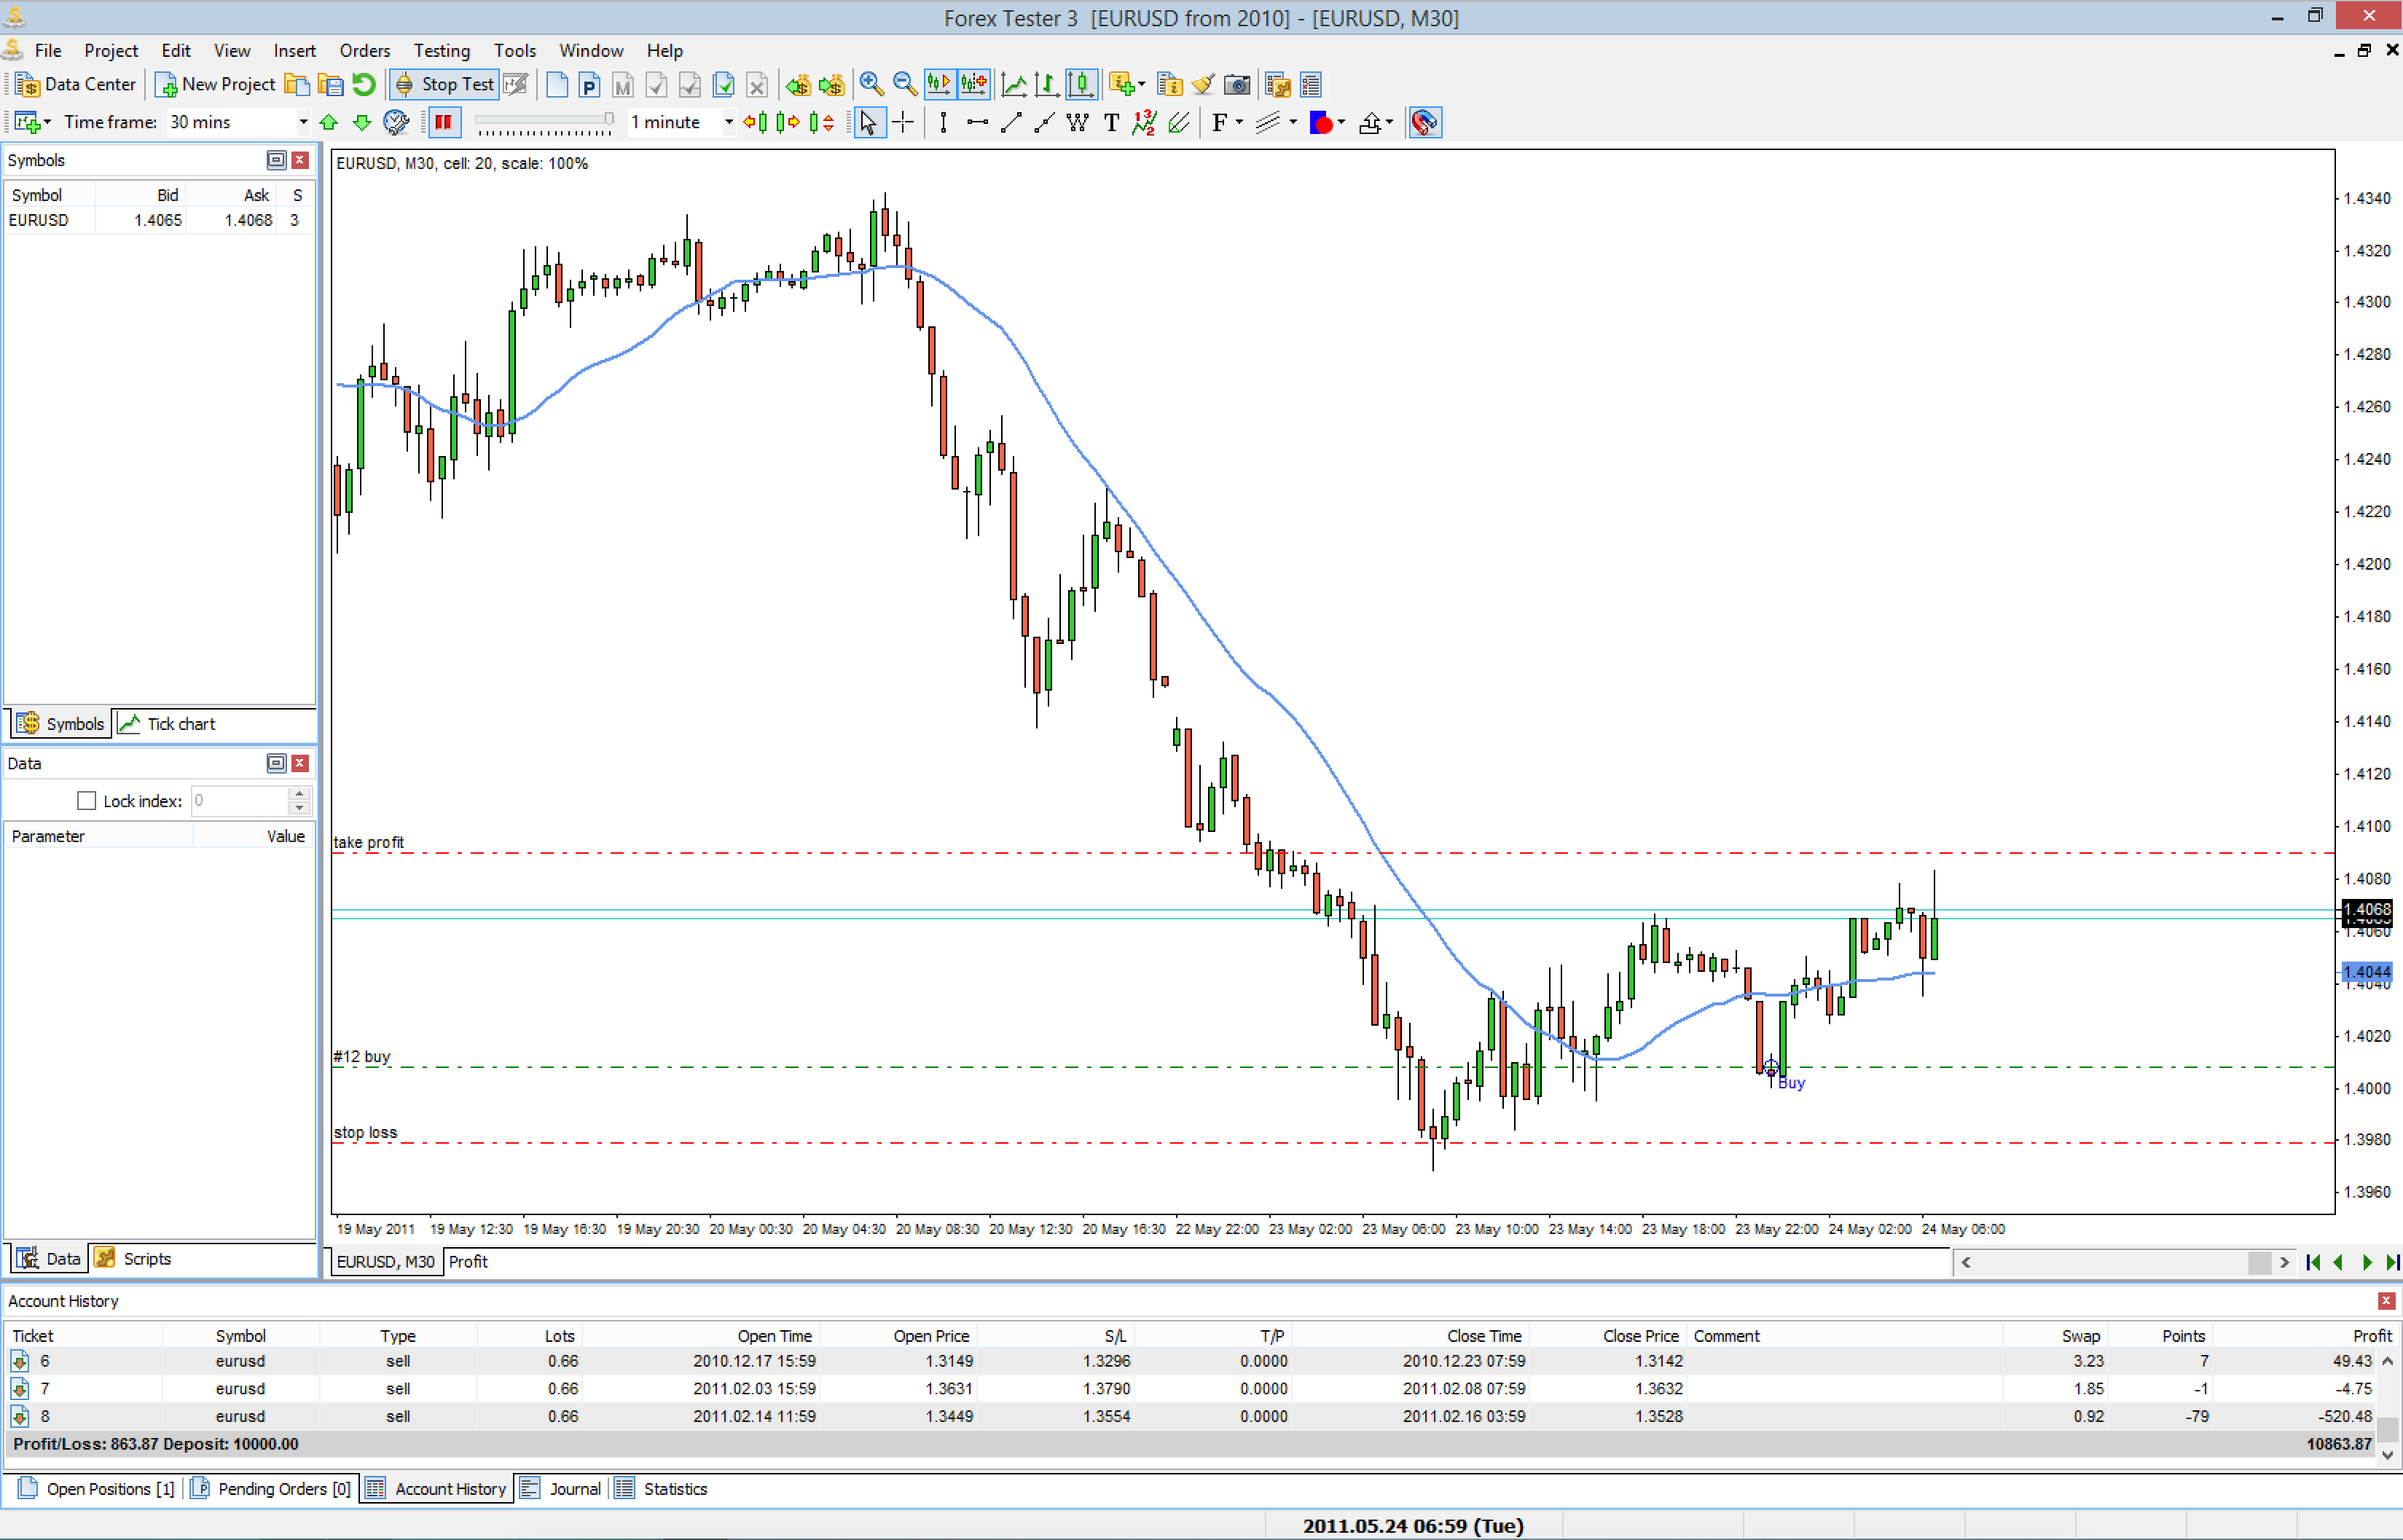 How to create a new forex trading strategy - Smart Forex Learning